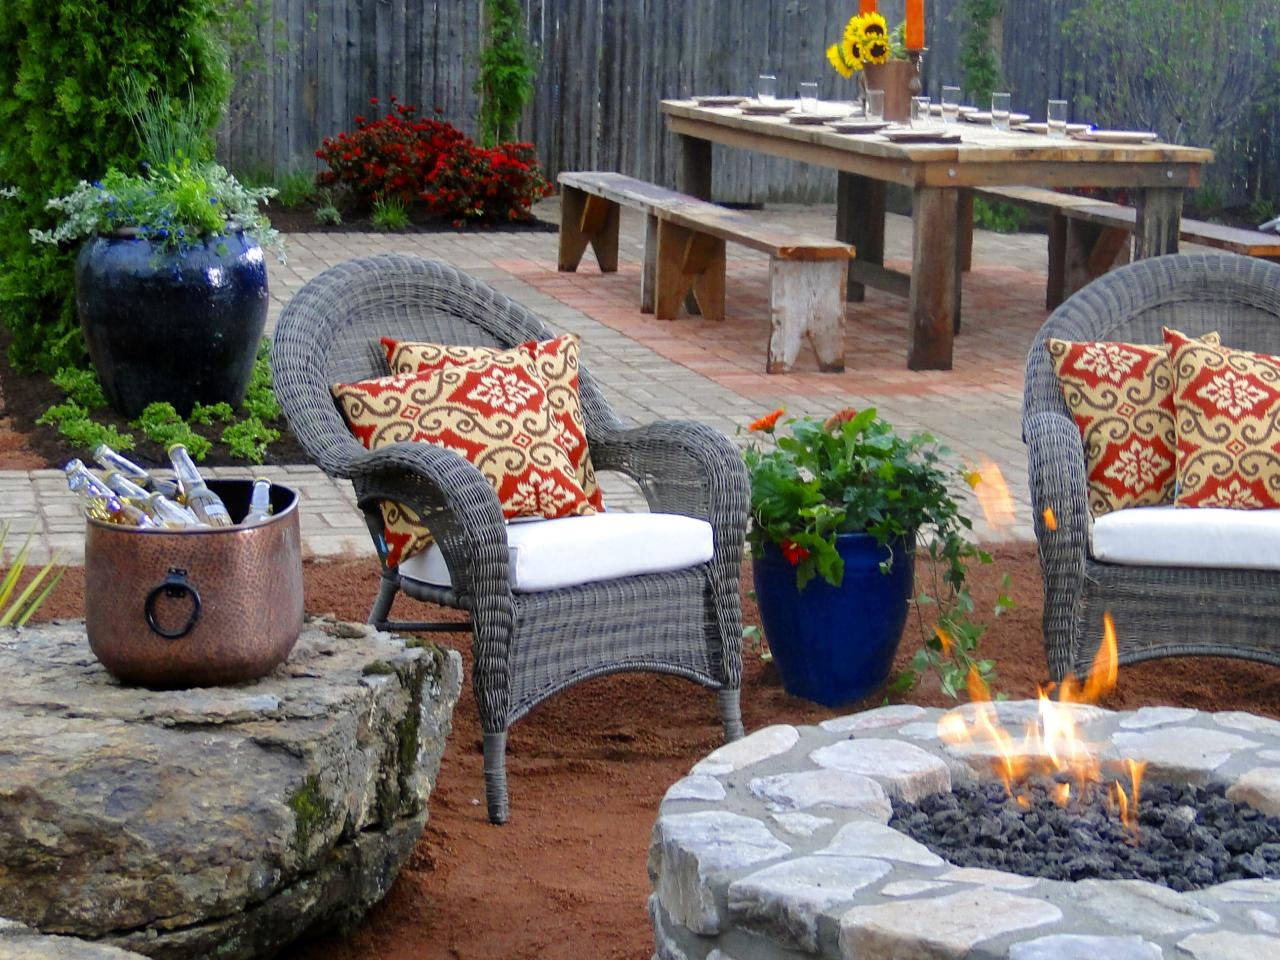 66 fire pit and outdoor fireplace ideas diy network blog Fireplace setting ideas